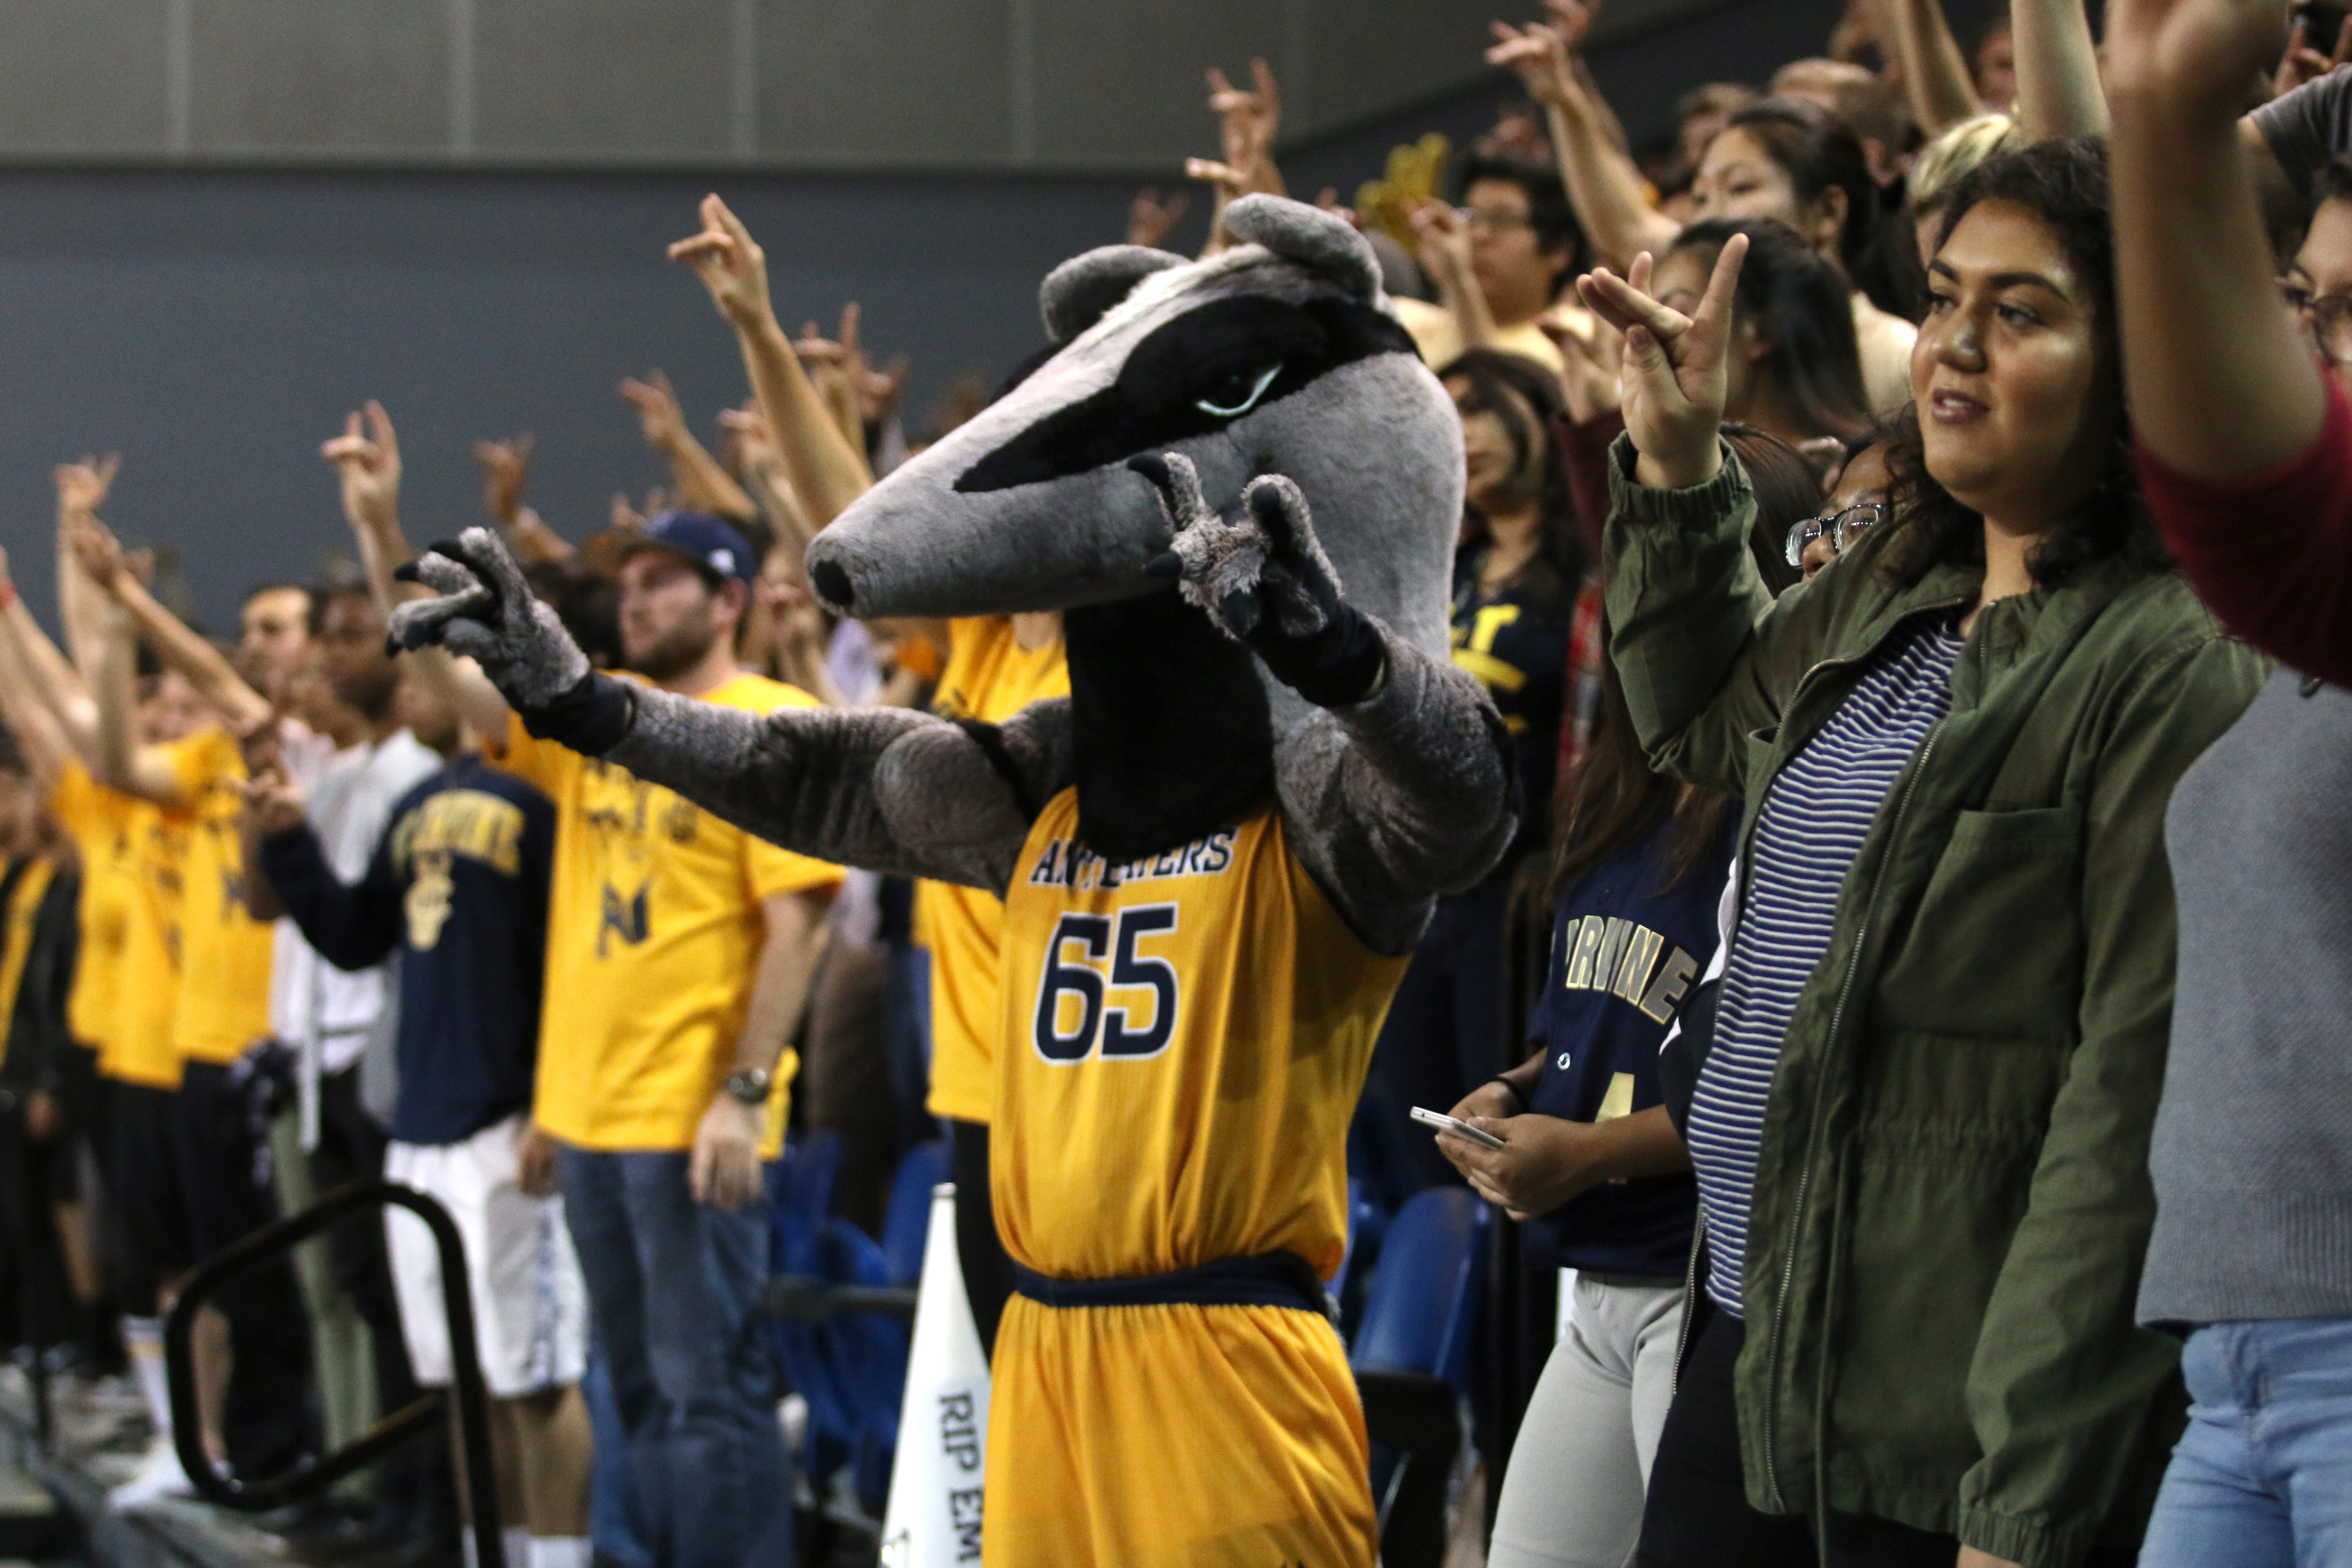 University of California, Irvine's fans cheer at an Anteaters game.